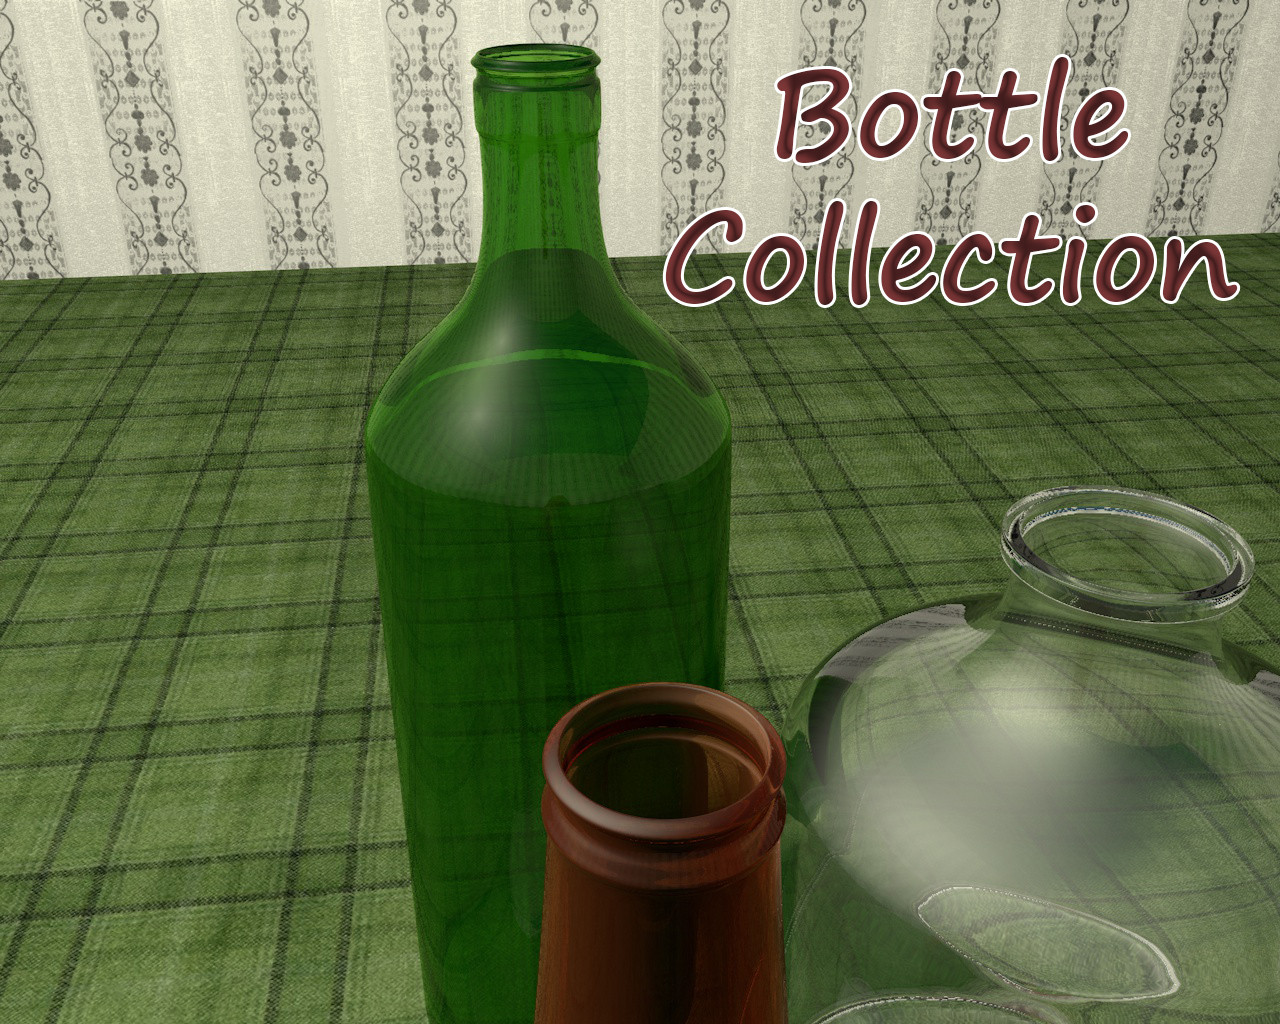 Bottle_collection_main.jpg